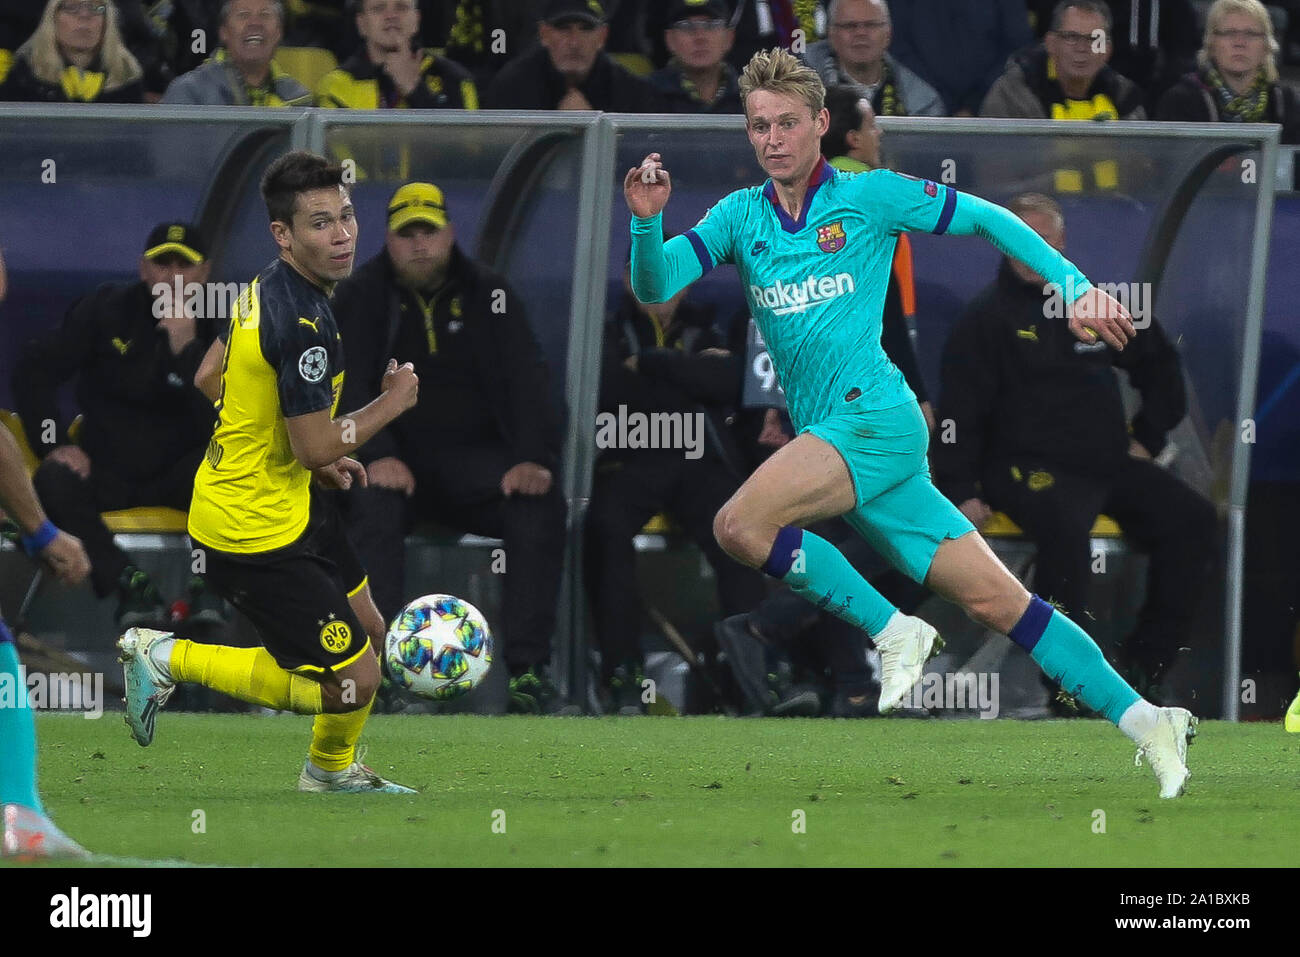 Raphael Guerreiro  in Borussia Dortmund and Frenkie De Jong in FC Barcelone during the UEFA Champions League, Group F football match between Borussia Dortmund and FC Barcelona on September 17, 2019 at BVB Stadion in Dortmund, Germany - Photo Laurent Lairys / MAXPPP Stock Photo